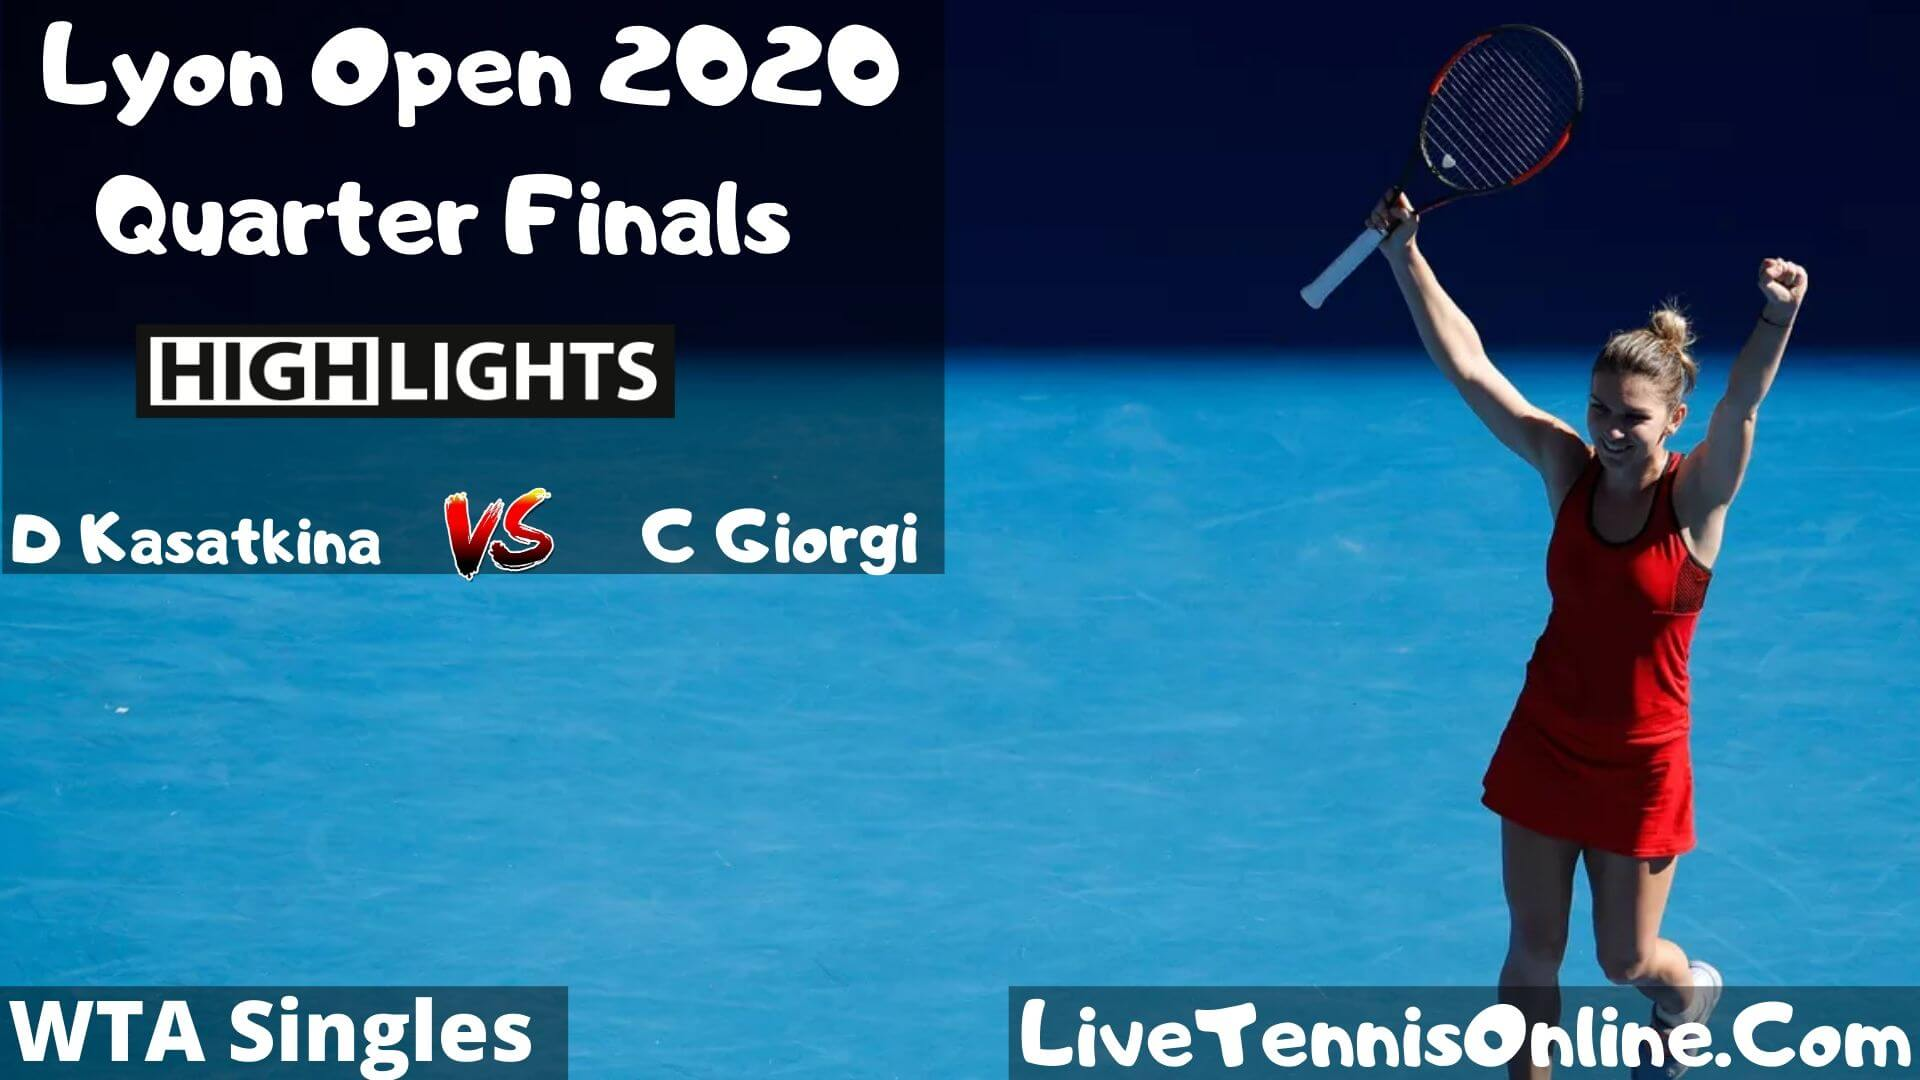 D Kasatkina Vs C Giorgi Highlights 2020 QF Lyon Open